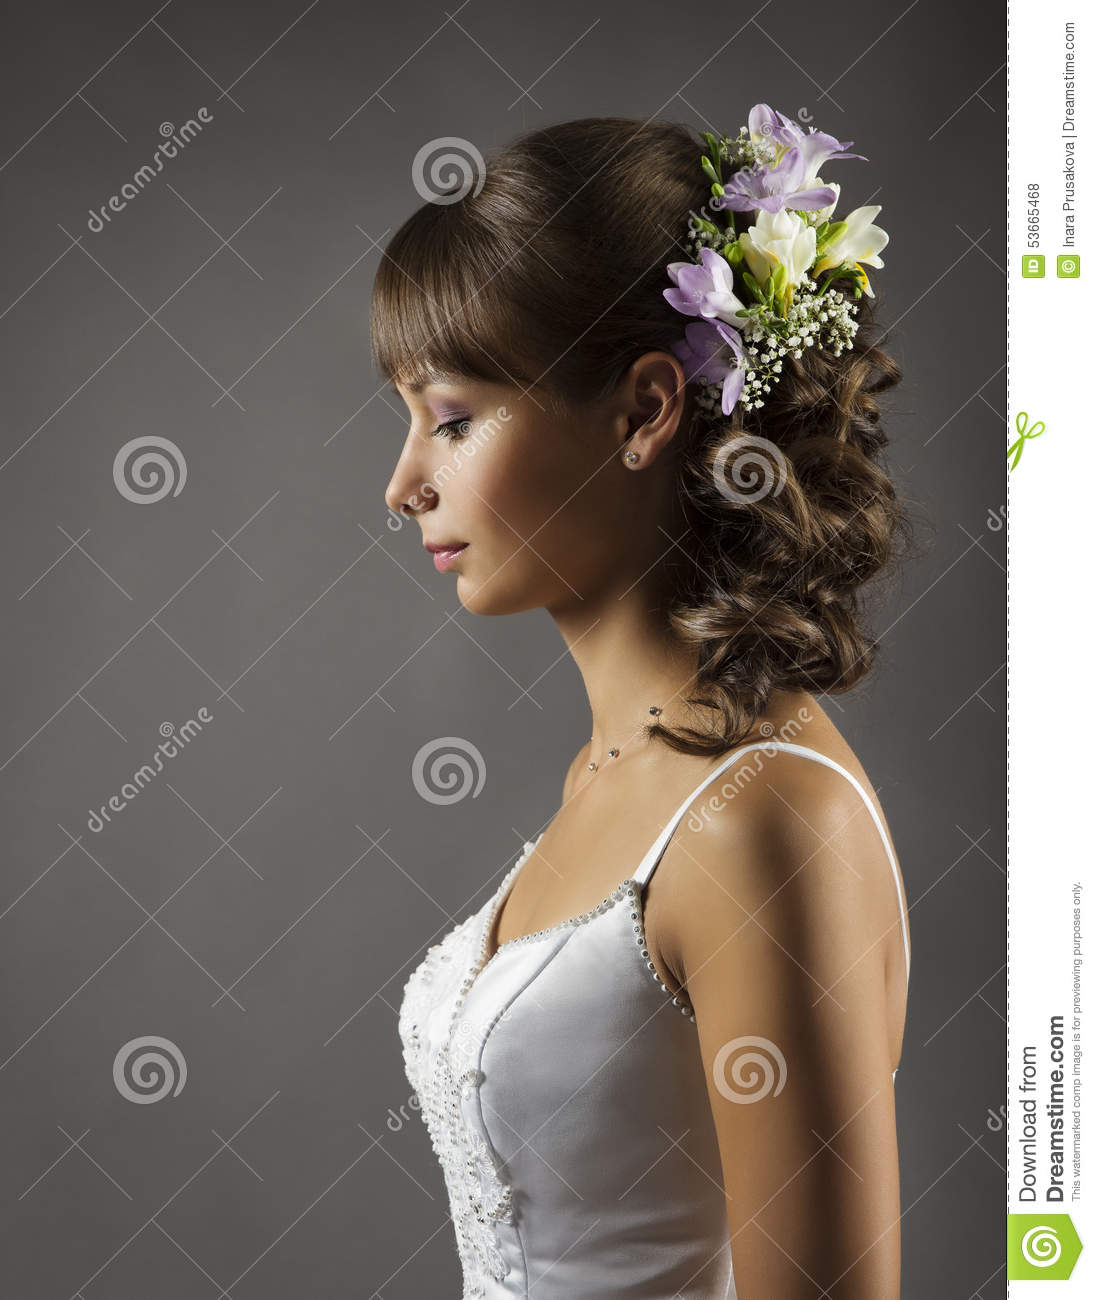 bride portrait, wedding hairstyle flowers, bridal hair style stock